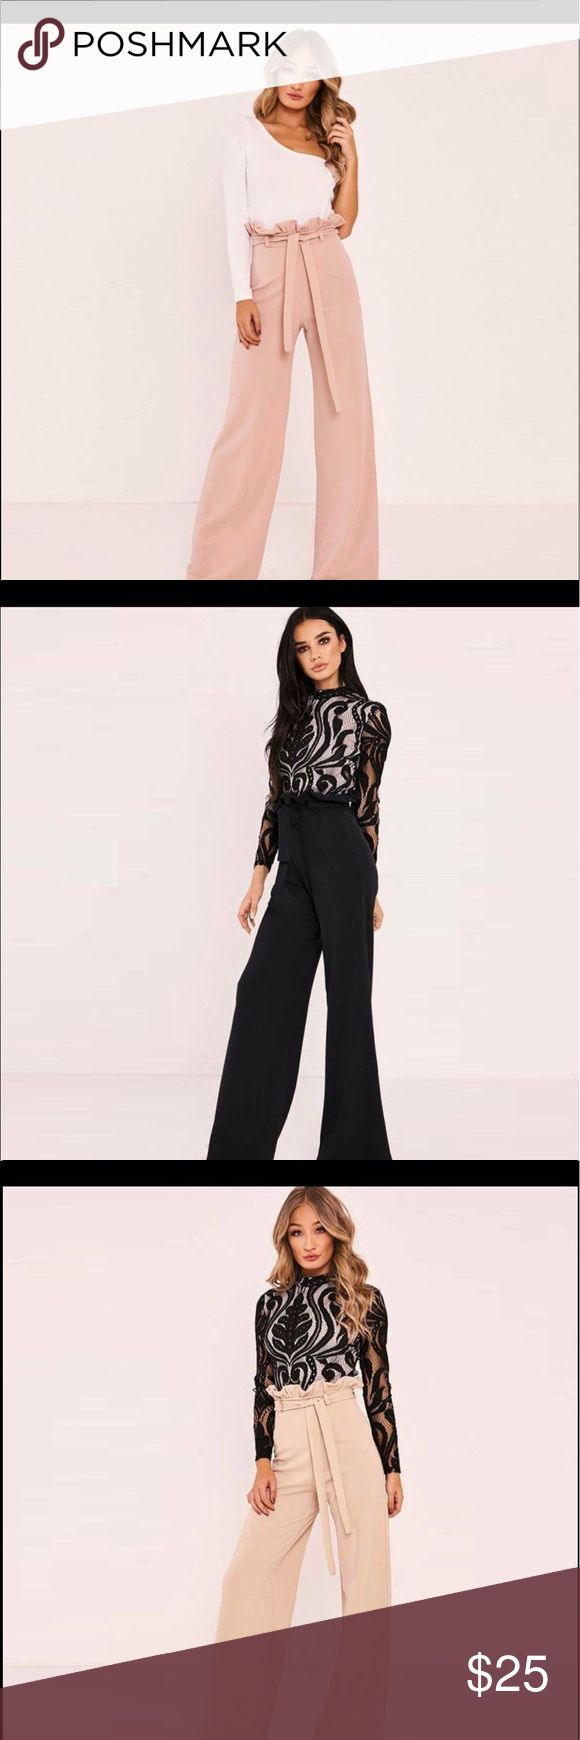 🍑Coming Soon🍑 women's wide leg trouser Brand new. 🗣Available in S,M,L,1X 🤗🤗💋 pre-order now!!! Jeans Flare & Wide Leg